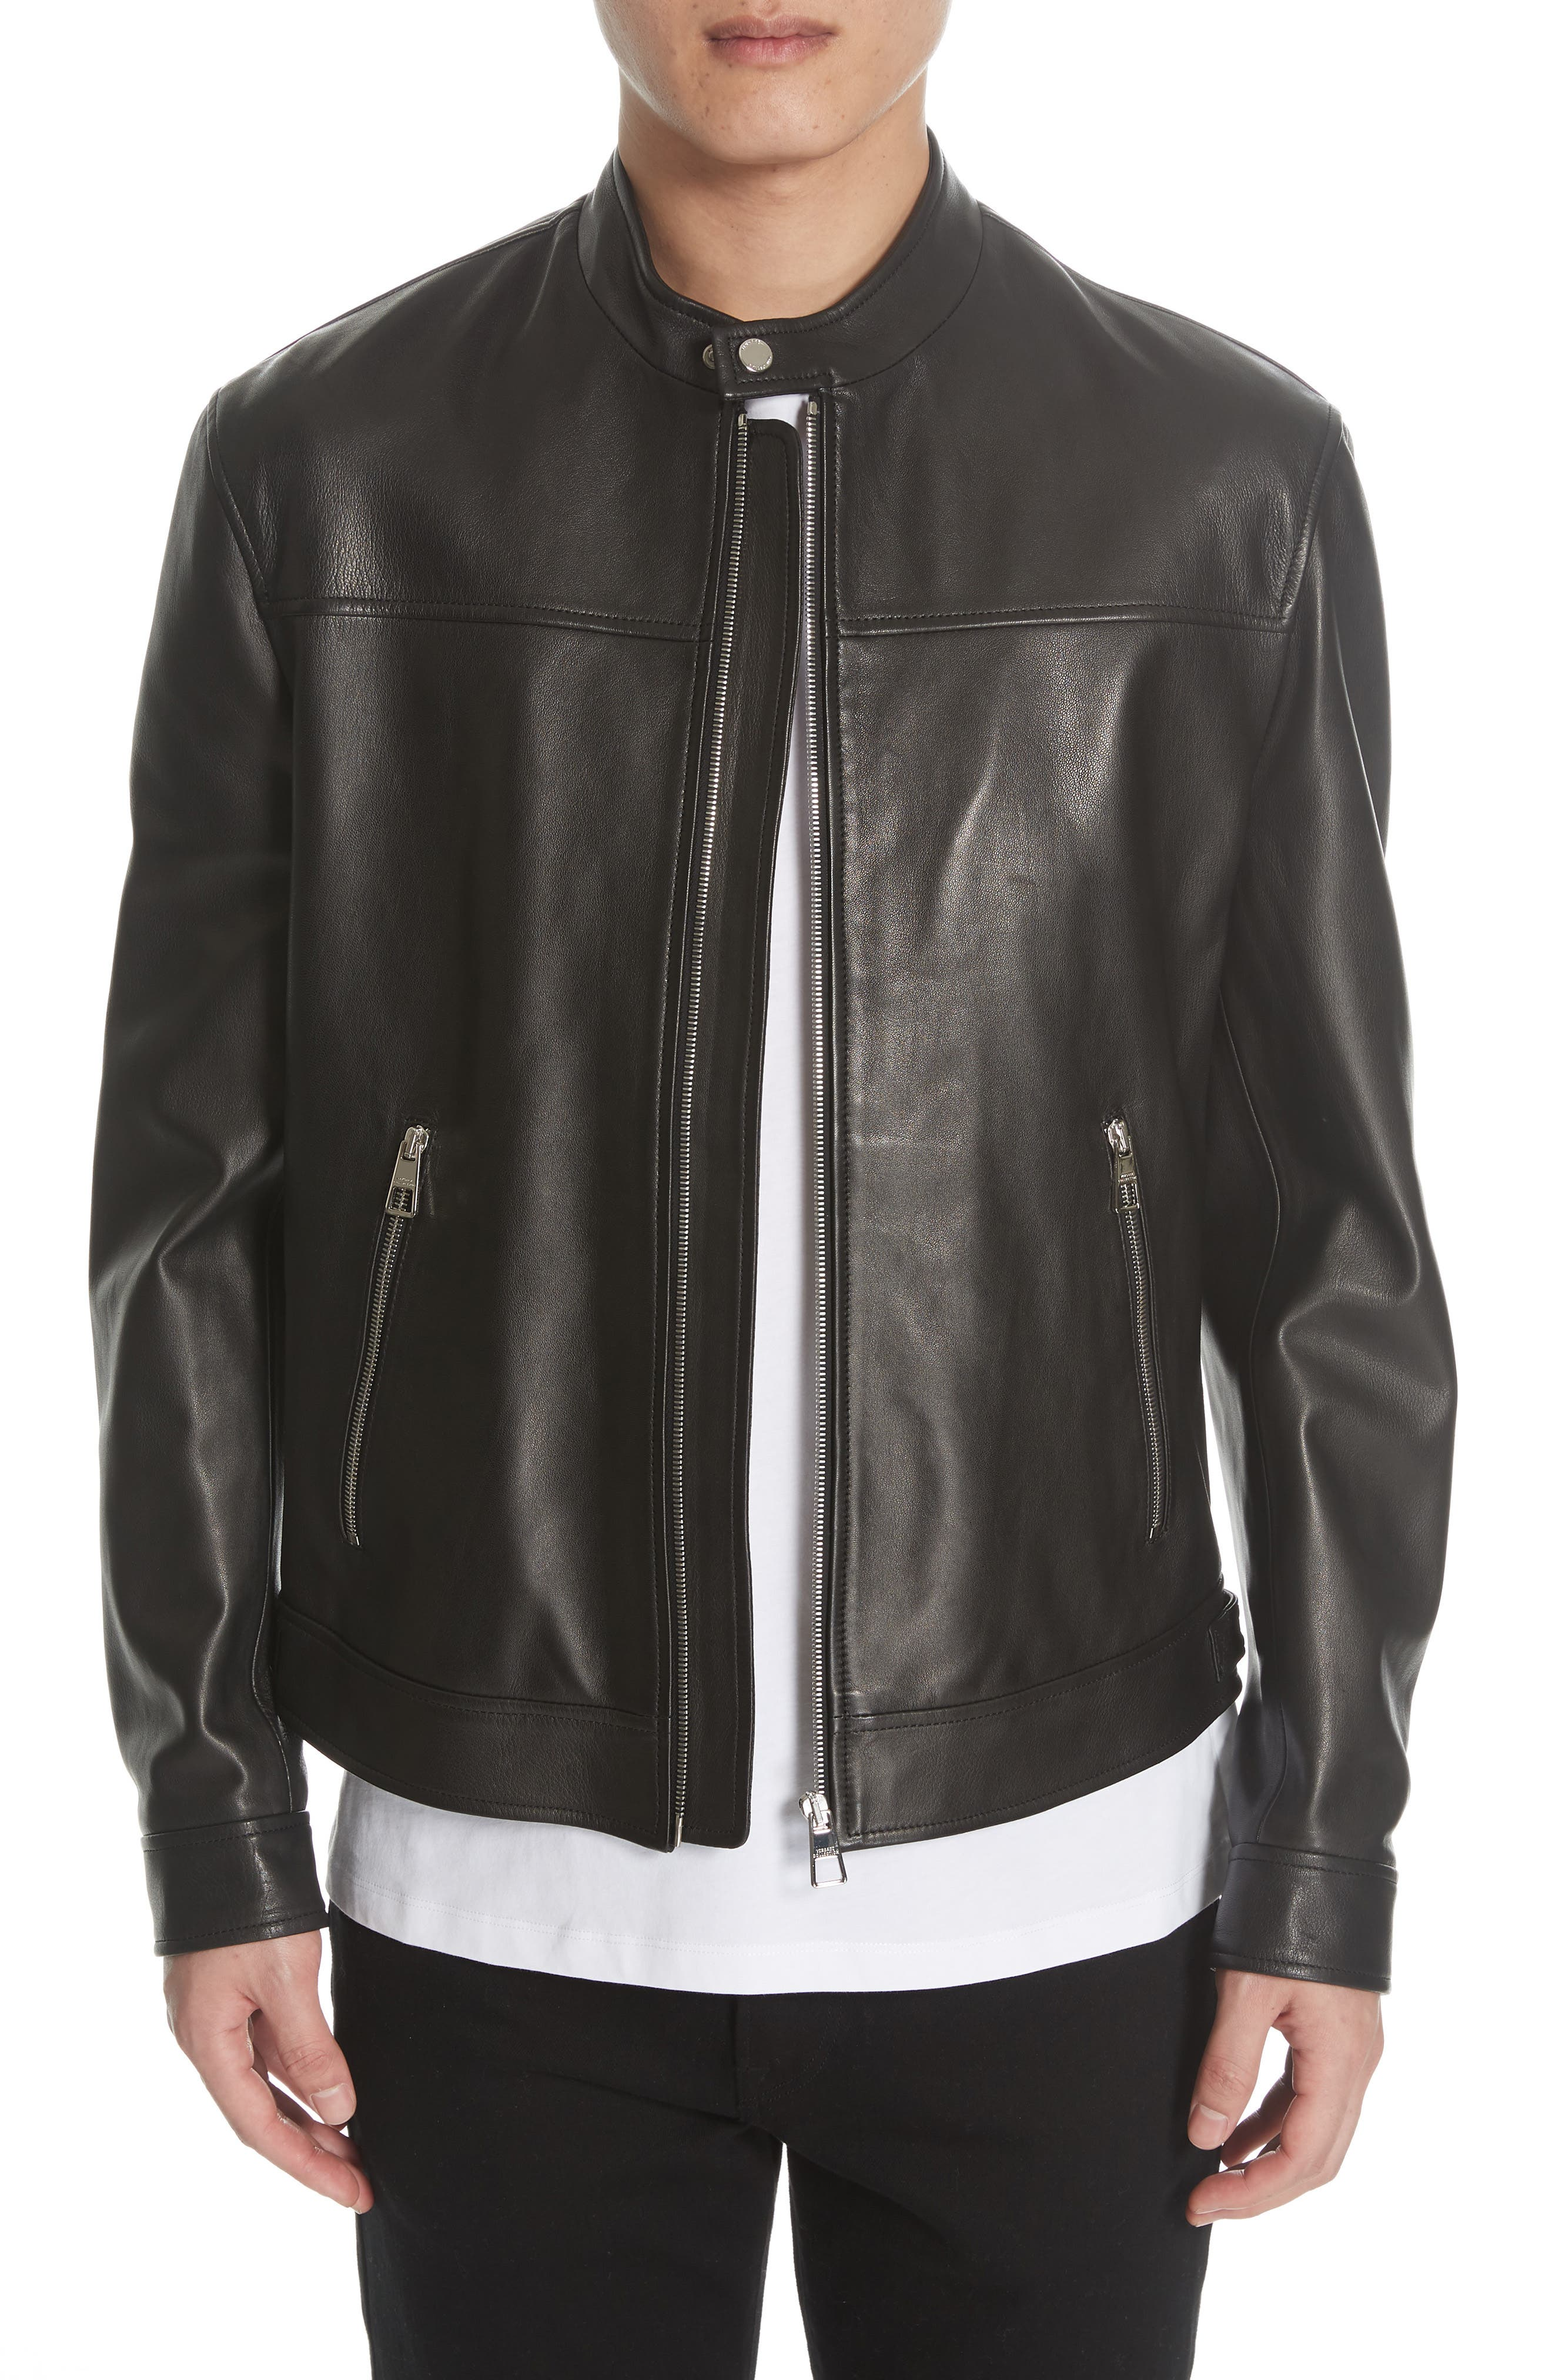 VERSACE COLLECTION, Lambskin Leather Jacket, Main thumbnail 1, color, 001